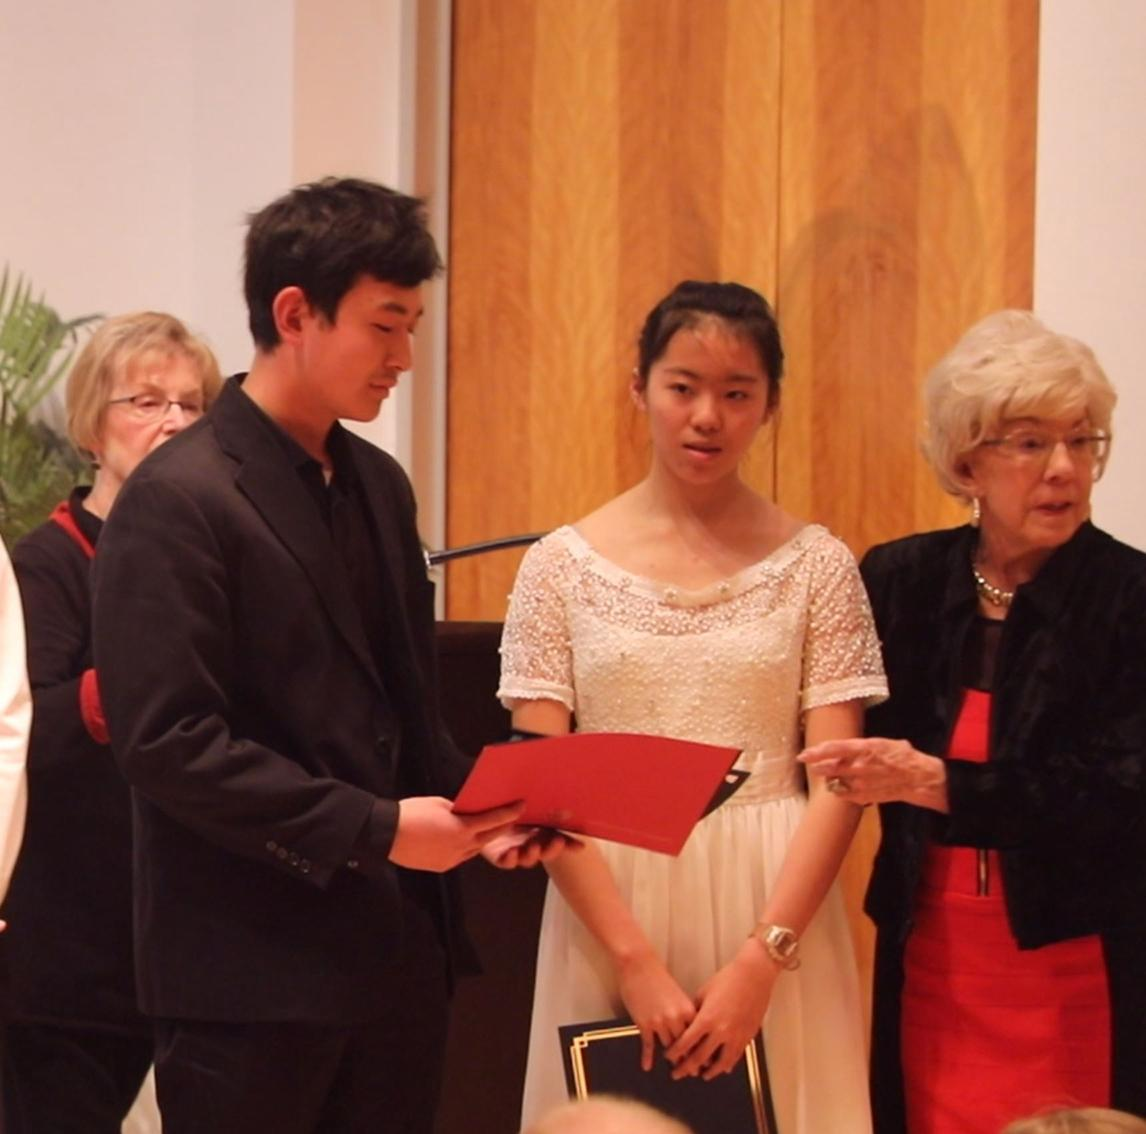 Wesley Dong, 2019 Second-Place Winner in Piano, accepts his certificate and prize money.  Jane Wei, First-Place Winner, and Jackie McGehee are to his right